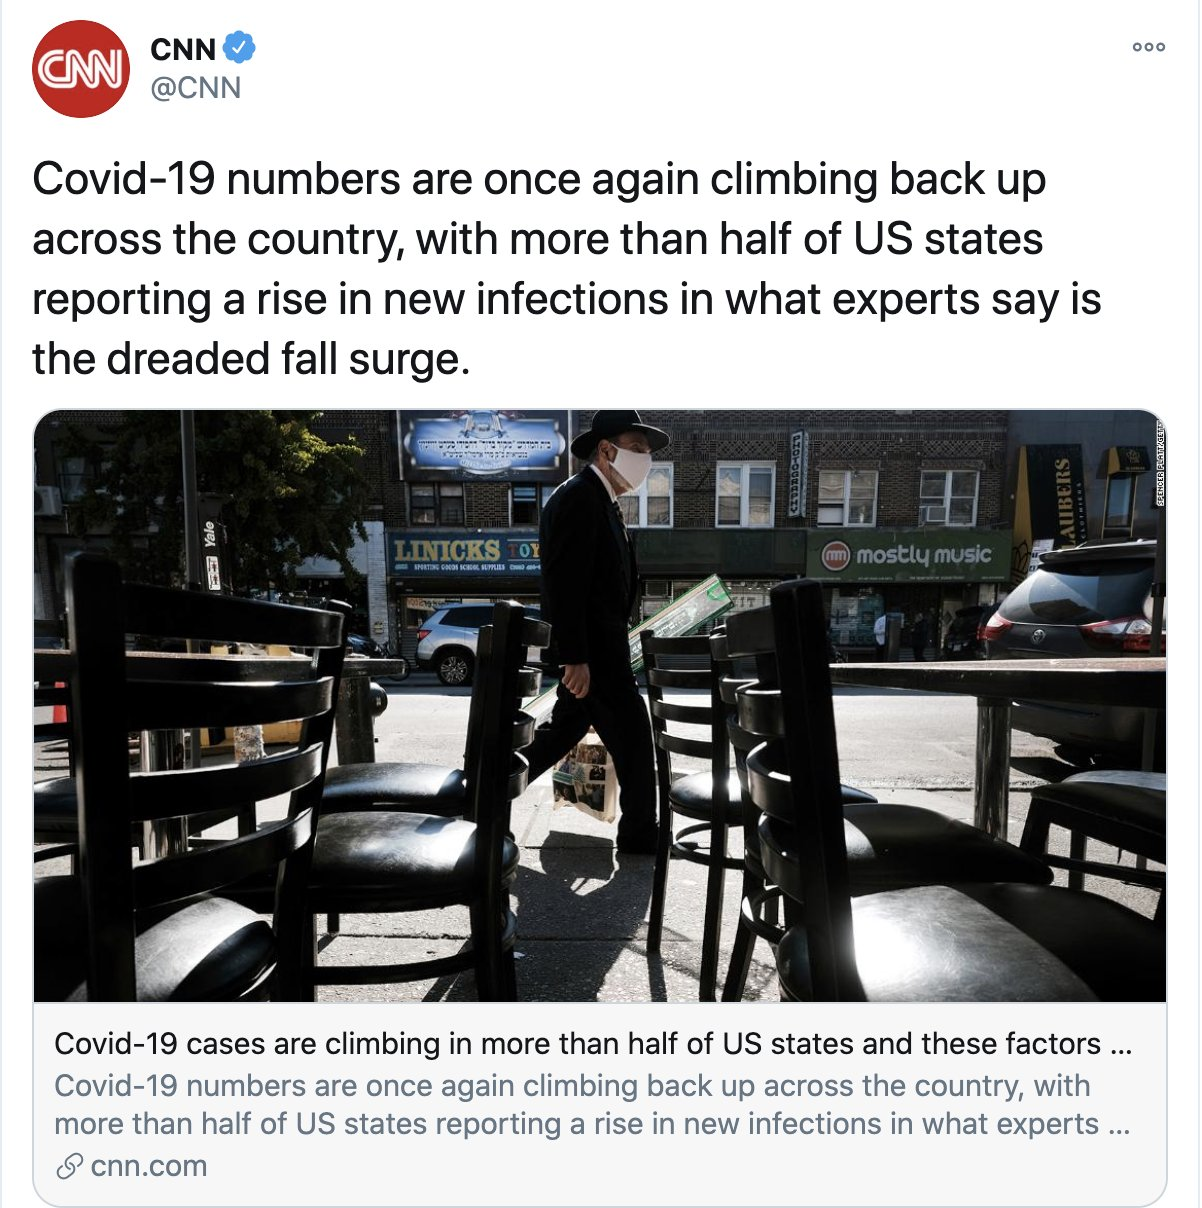 Mark D Levine On Twitter Cnn Tweets A Story On The Many States Nationally Where Covid Cases Are Rising New York As Of This Week Not Being One Of Them And The